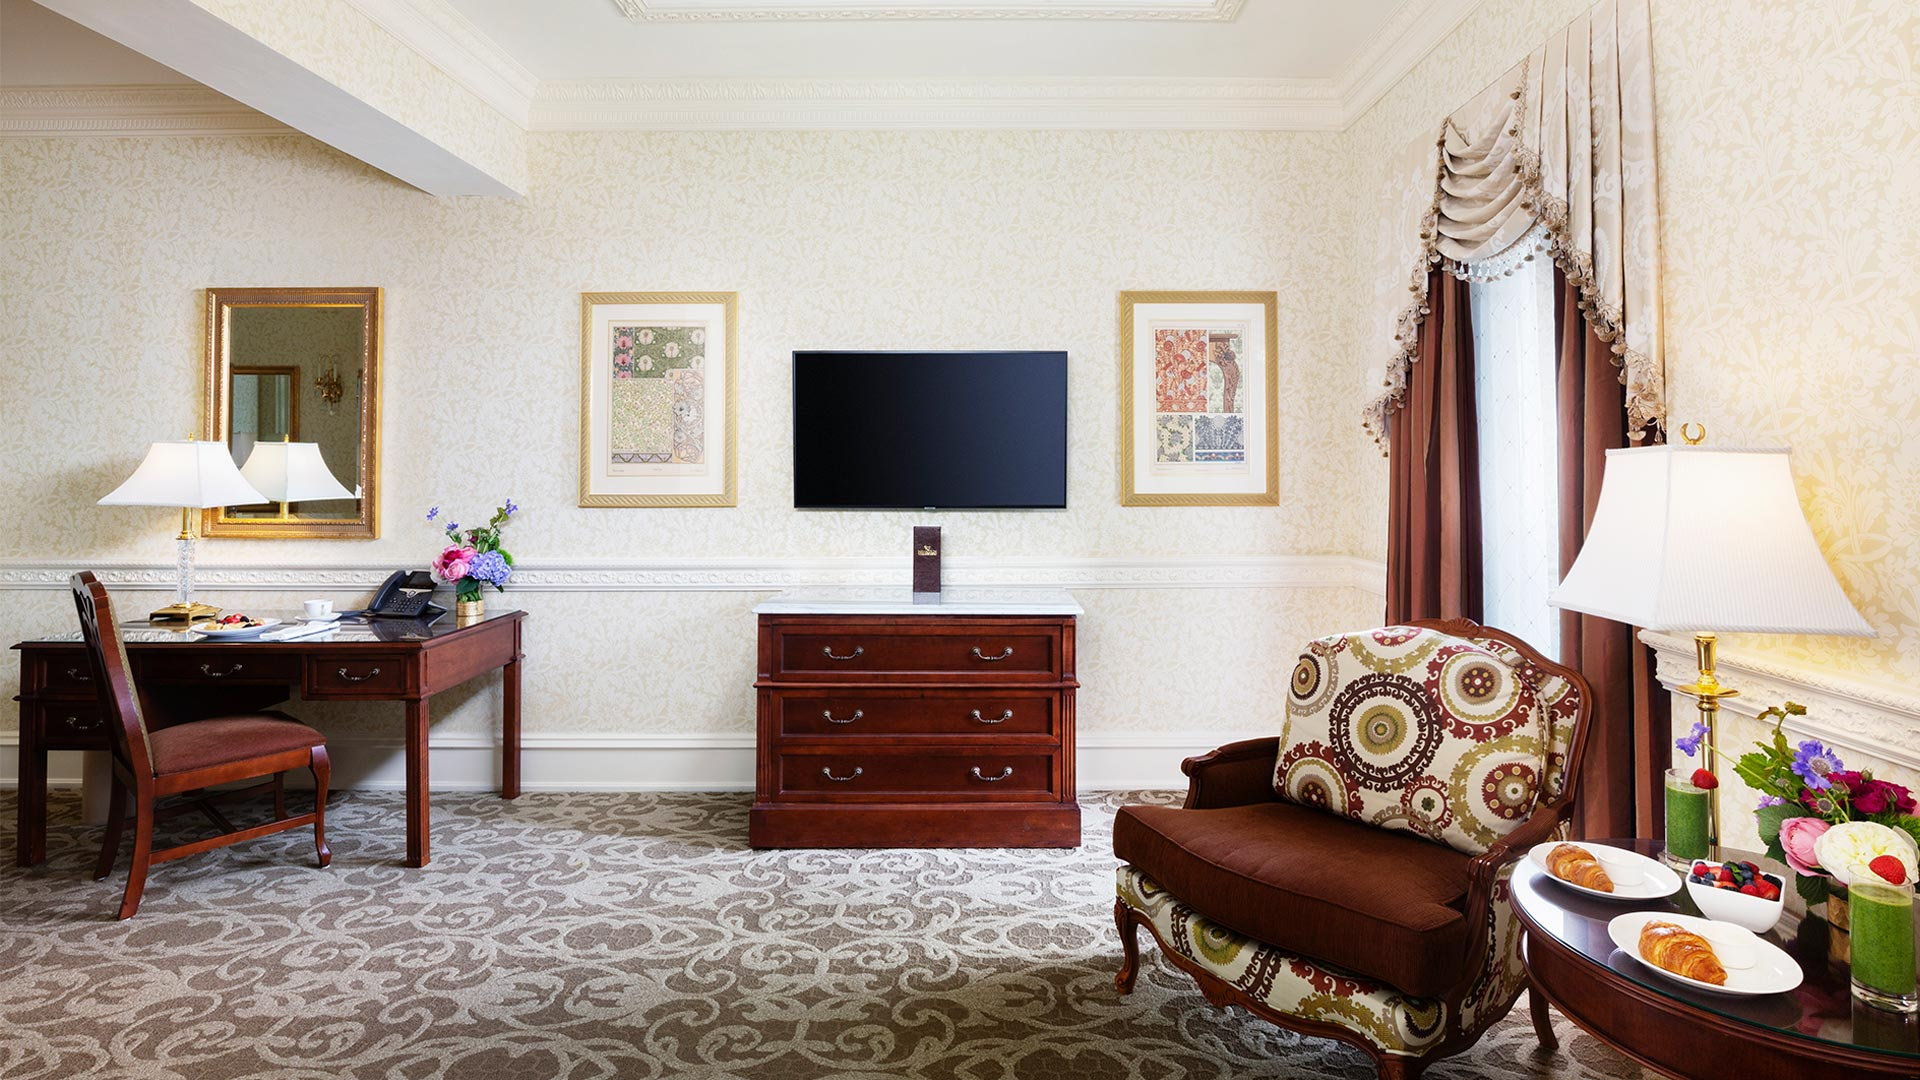 sitting area with a desk, tv, dresser and chairs. there is breakfast on the side table between the two chairs